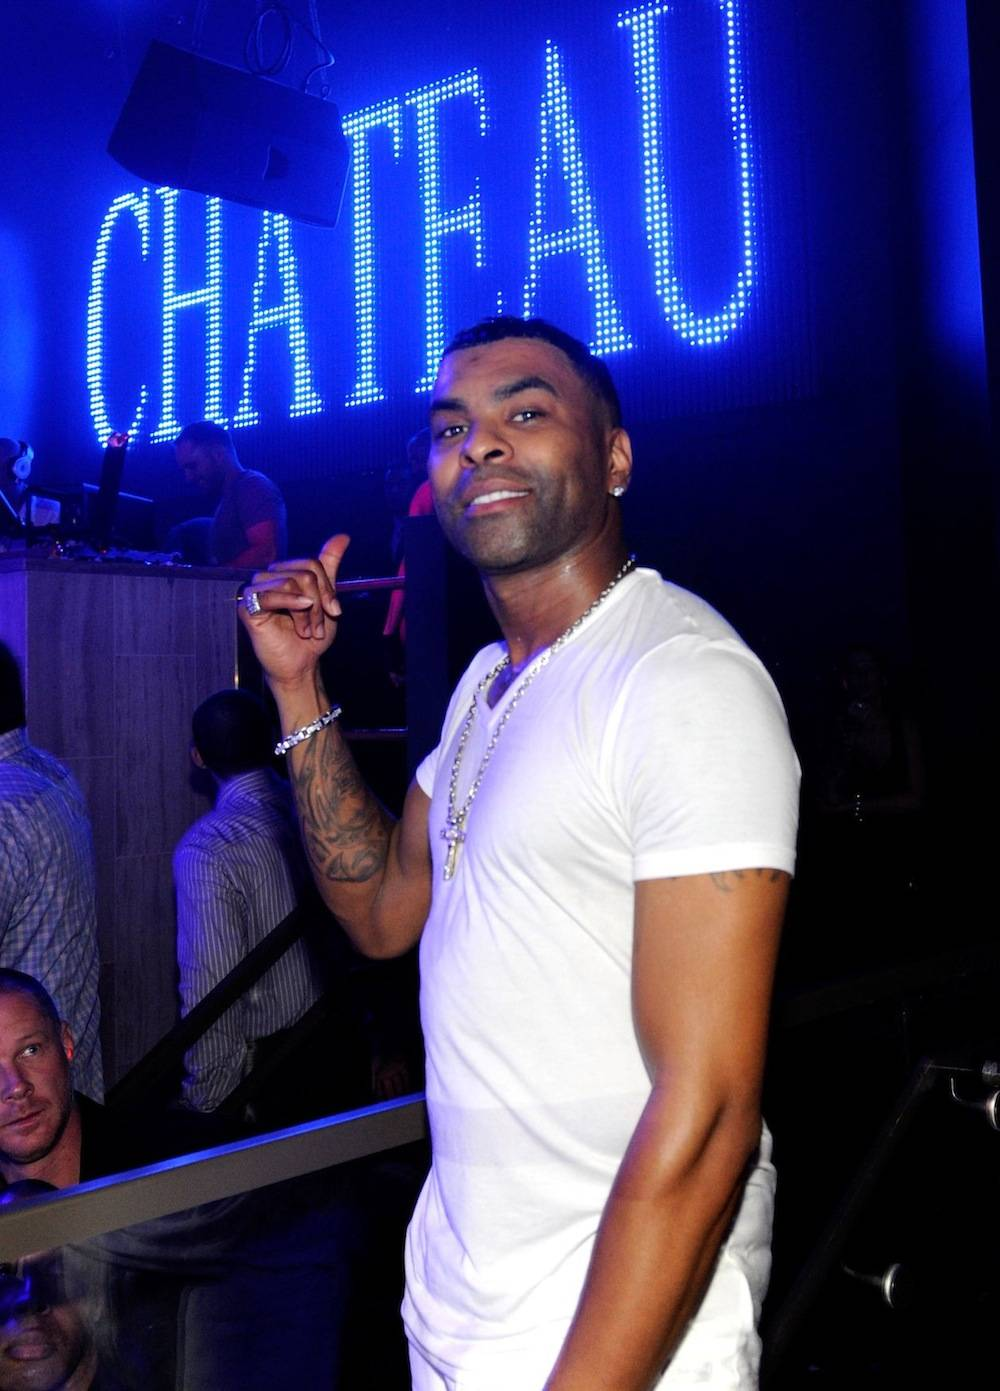 Sultry R&B Lyricist Ginuwine Performs For A Sold Out Crowd At Chateau Nightclub & Gardens During Labor Day Weekend